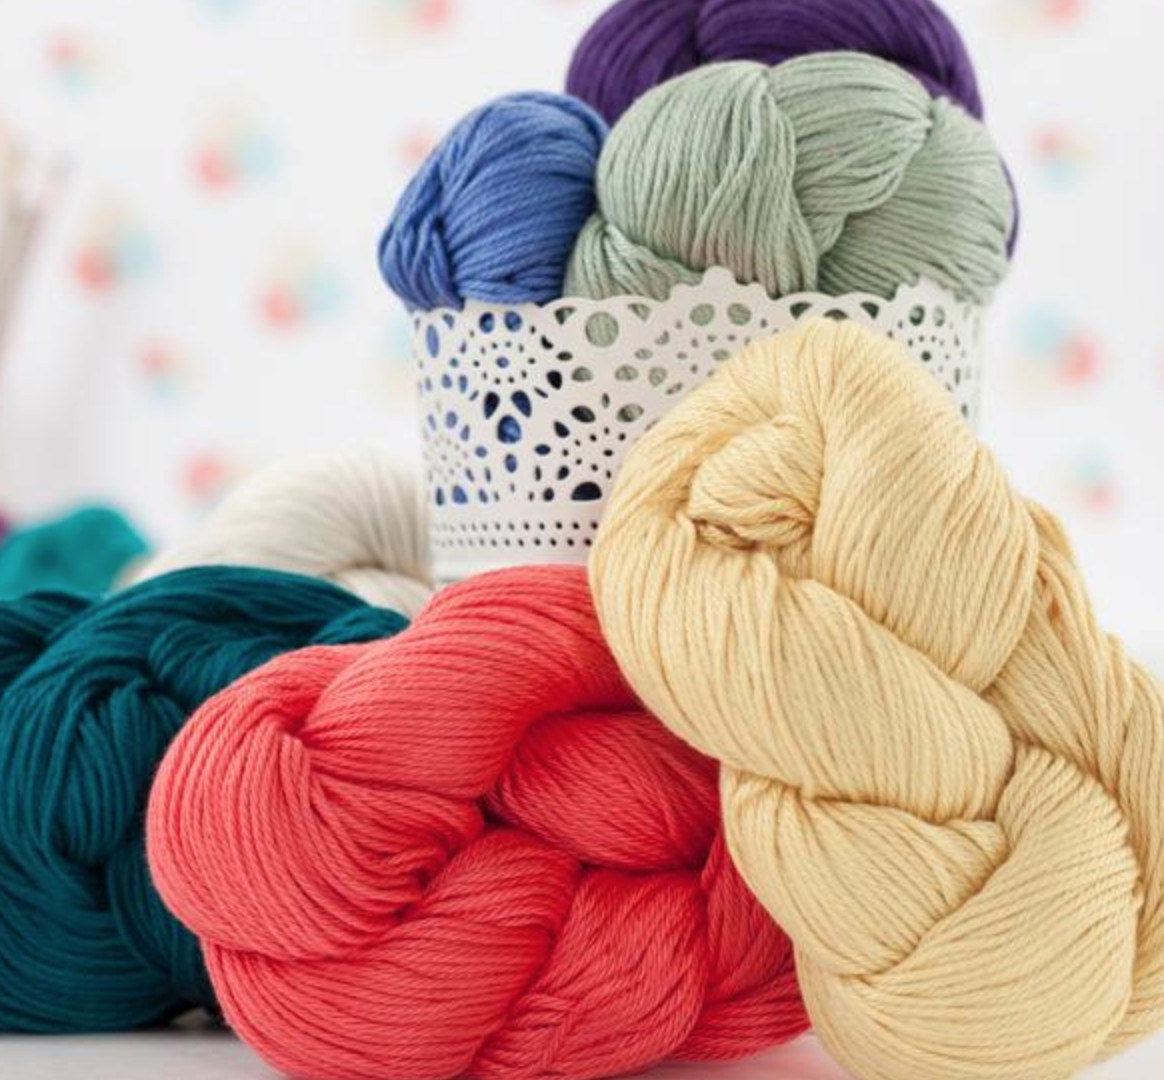 10 Tips for Crocheting With Cotton Yarn